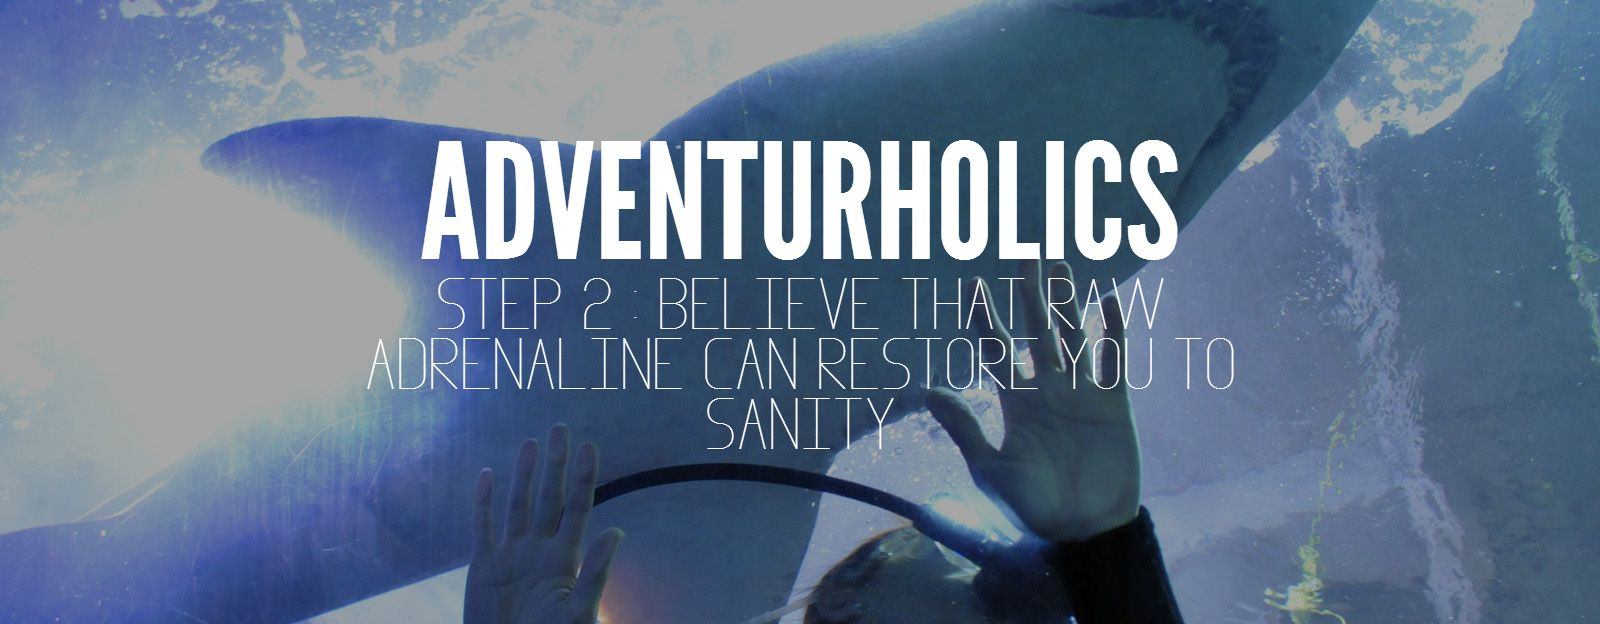 Step 2 : Believe that raw adrenaline can restore you to sanity #travel #adventure #shark